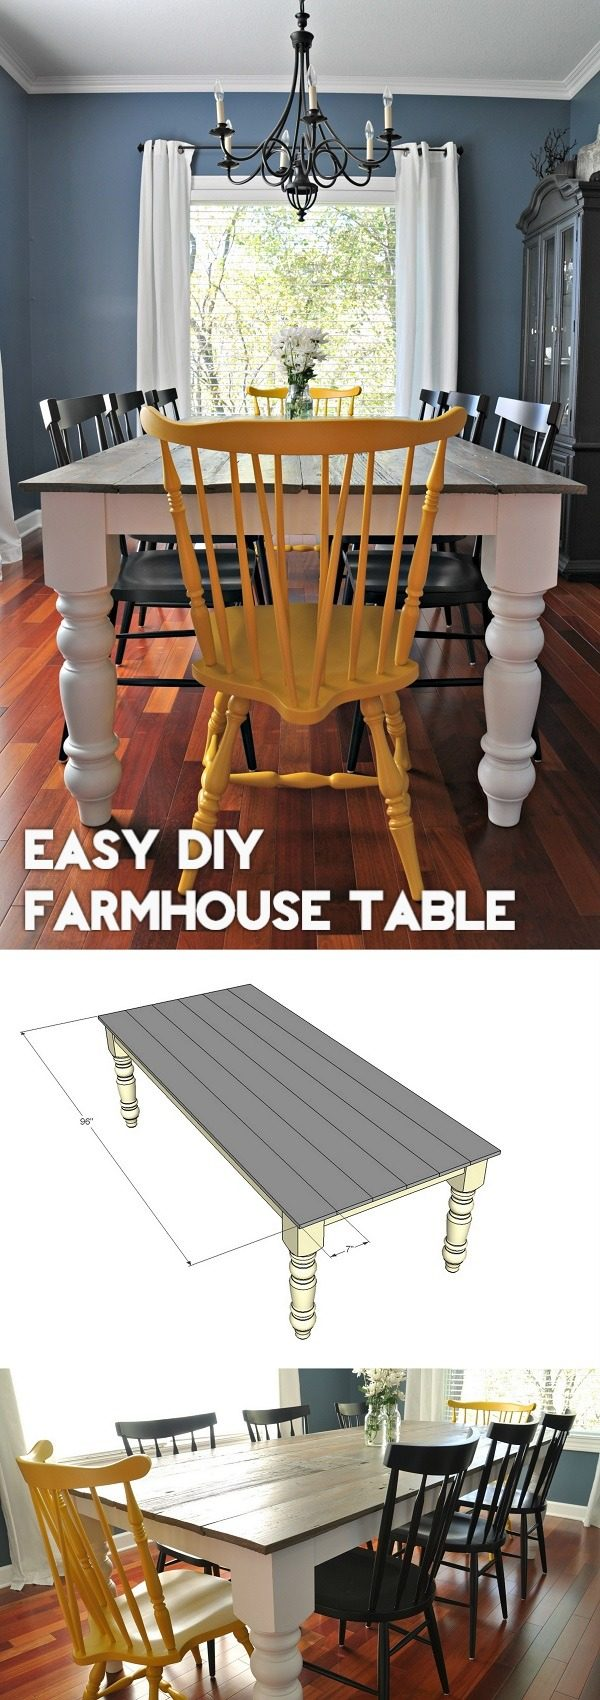 Check out the tutorial how to build an easy #DIY #farmhouse dining table #HomeDecorIdeas